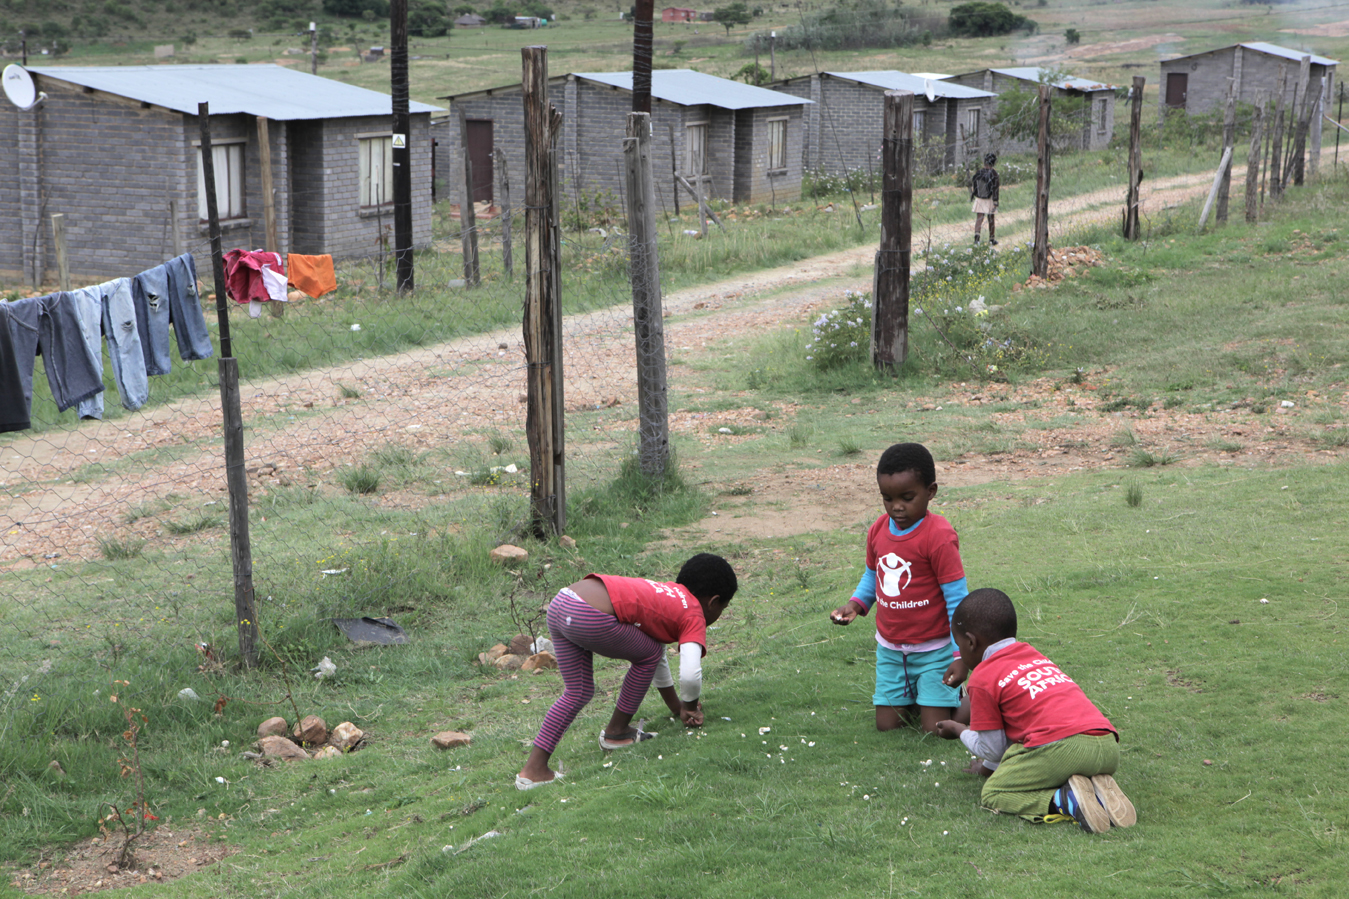 Children who attend the Save the Children Sizolomphakathi Early Childhood Development (ECD) Centre in Mpumalanga Province, play outside their home in the Thubulisha Reconstruction and Development Plan (RDP) community. Many children in the area live in single-parent households, either due to separated parents, a deceased parent or an absent father.